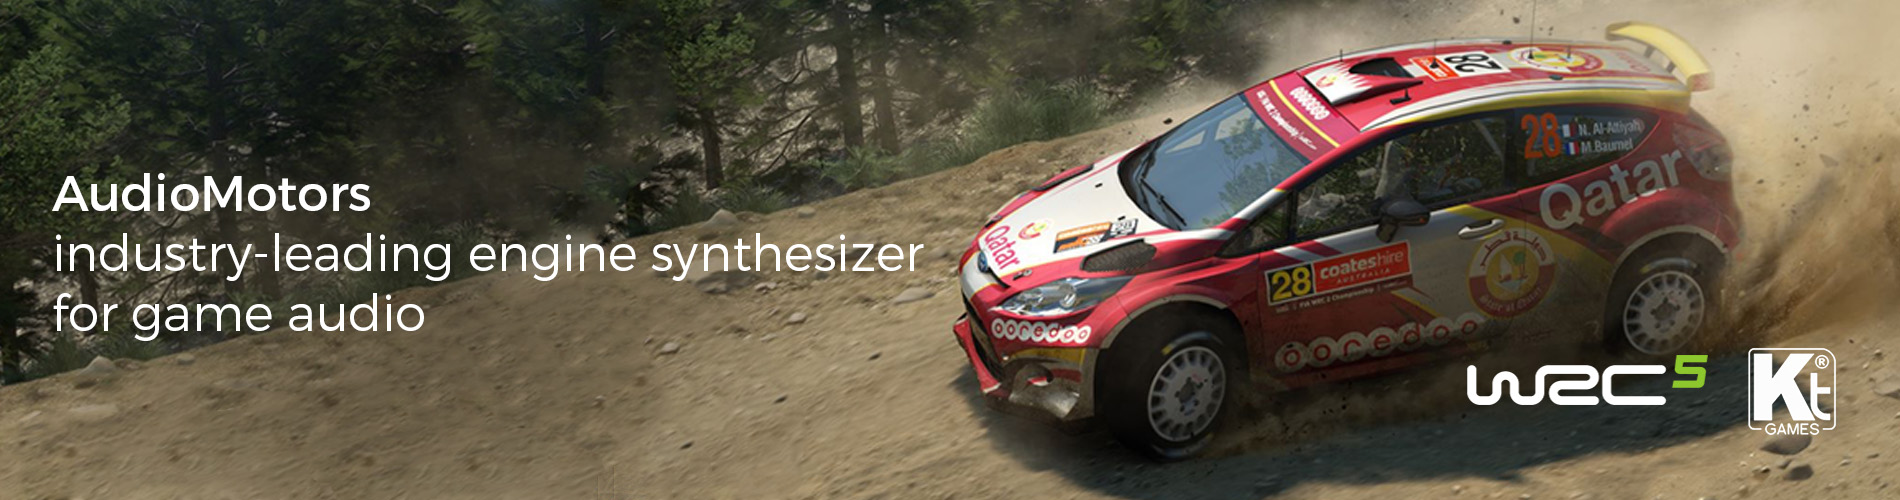 AudioMotors WRC5